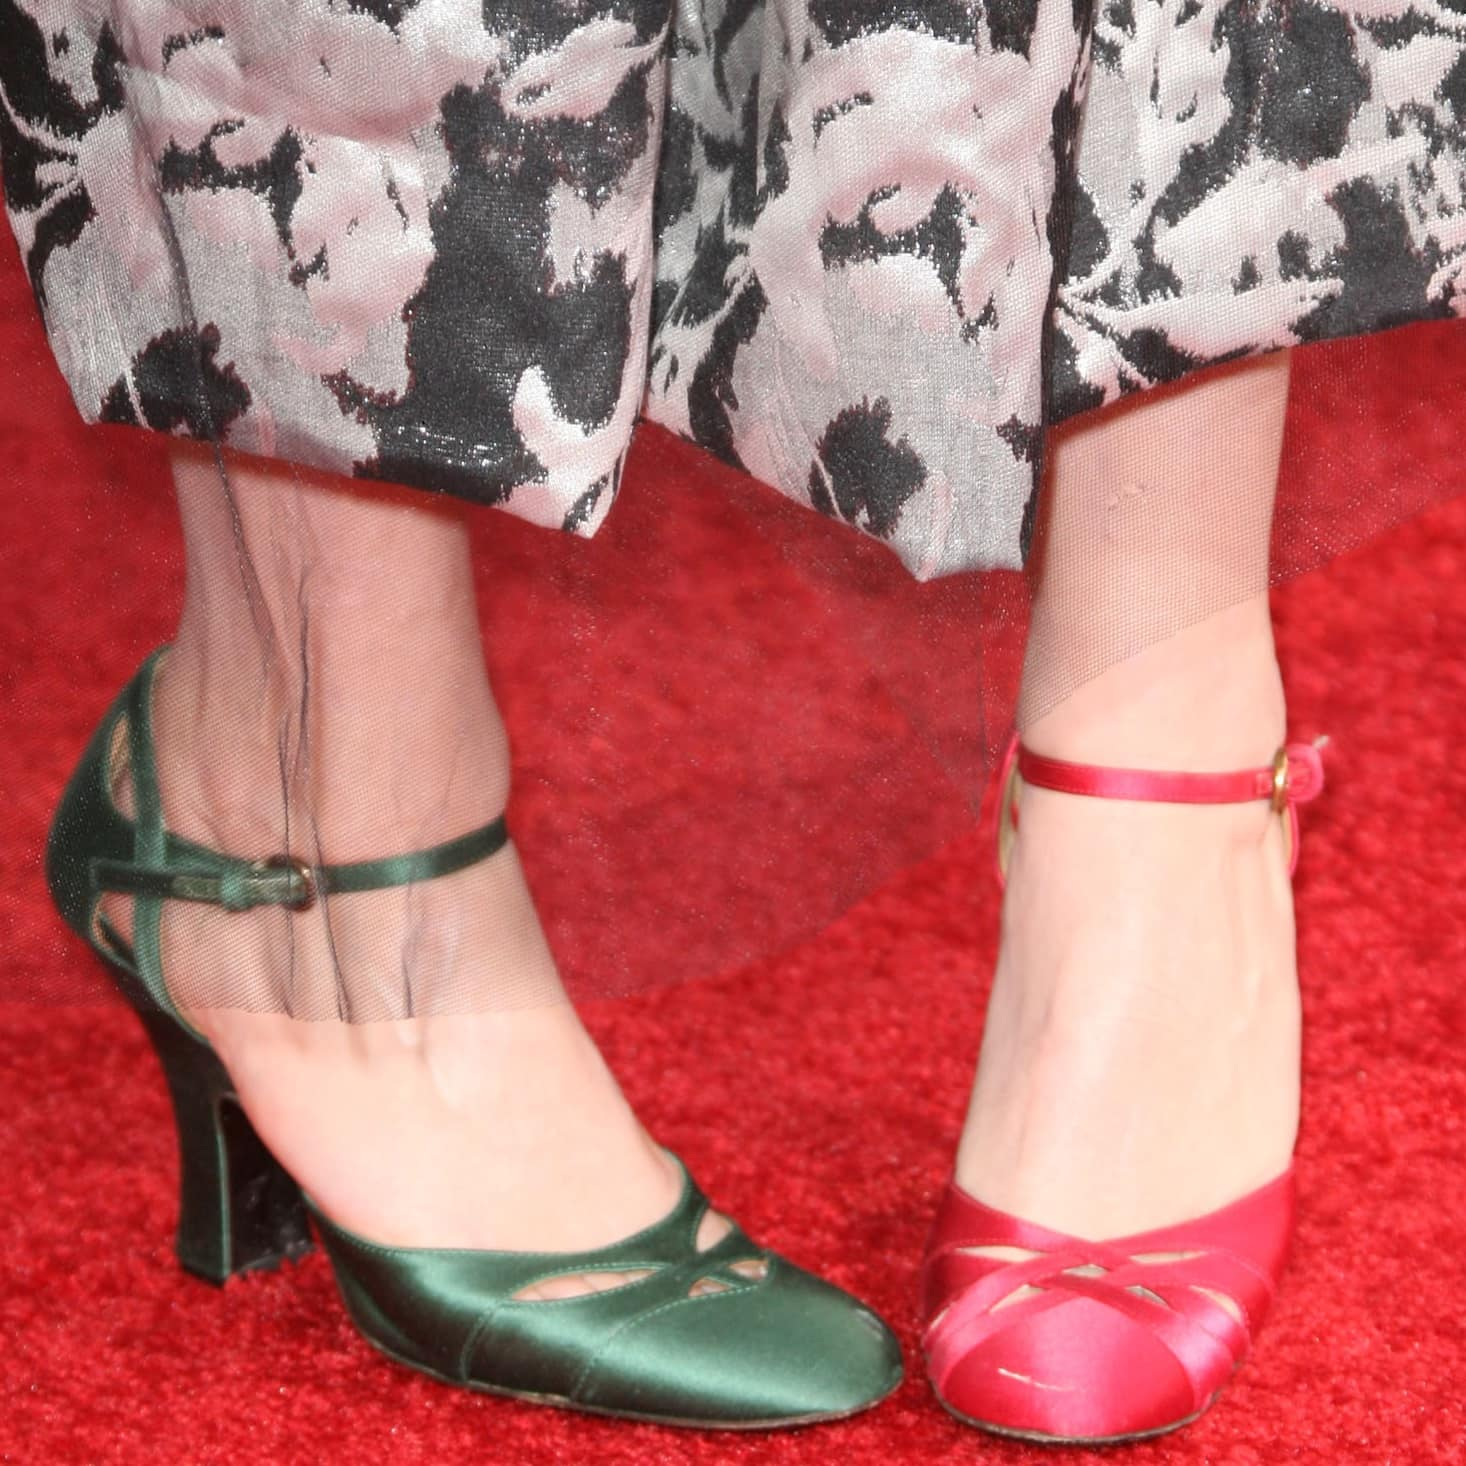 Helena Bonham Carter's one green shoe and one red shoe